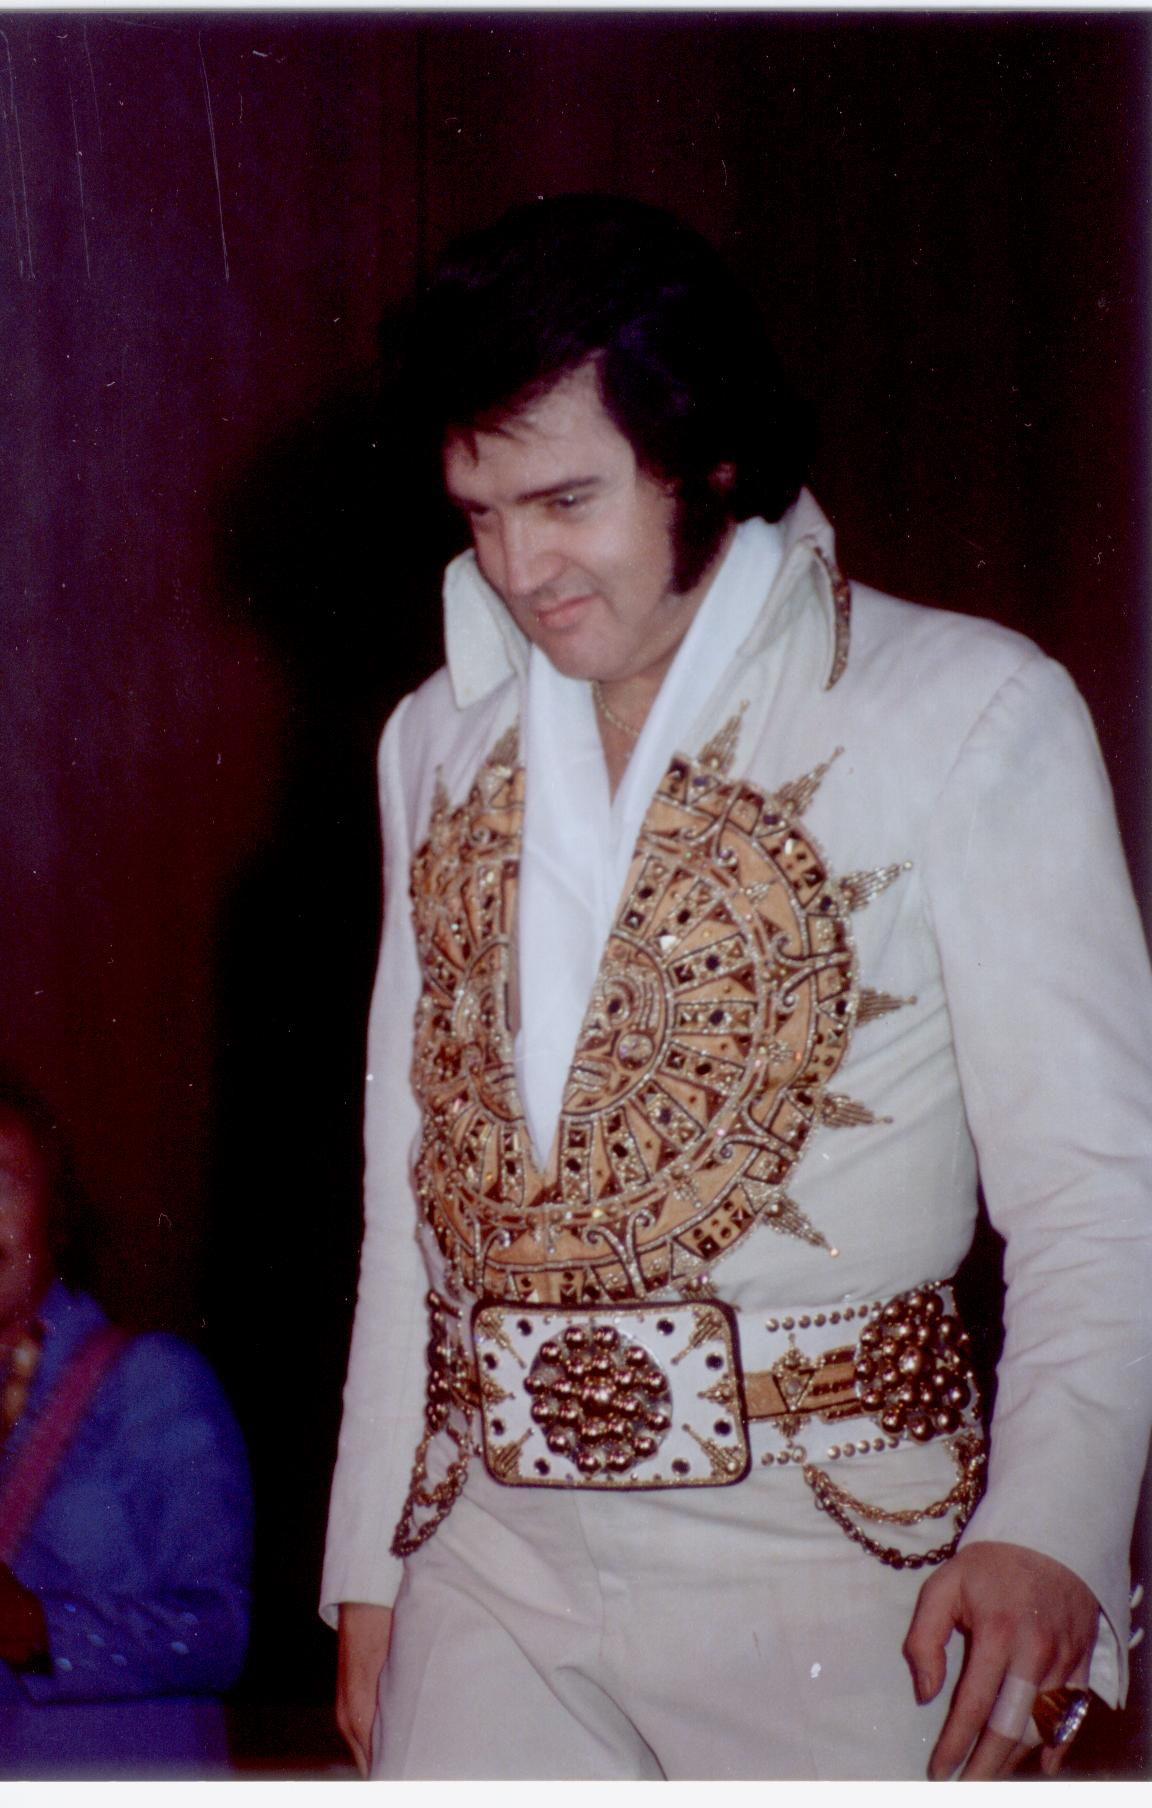 https://i0.wp.com/www.elvisconcerts.com/pictures/s77052904.jpg